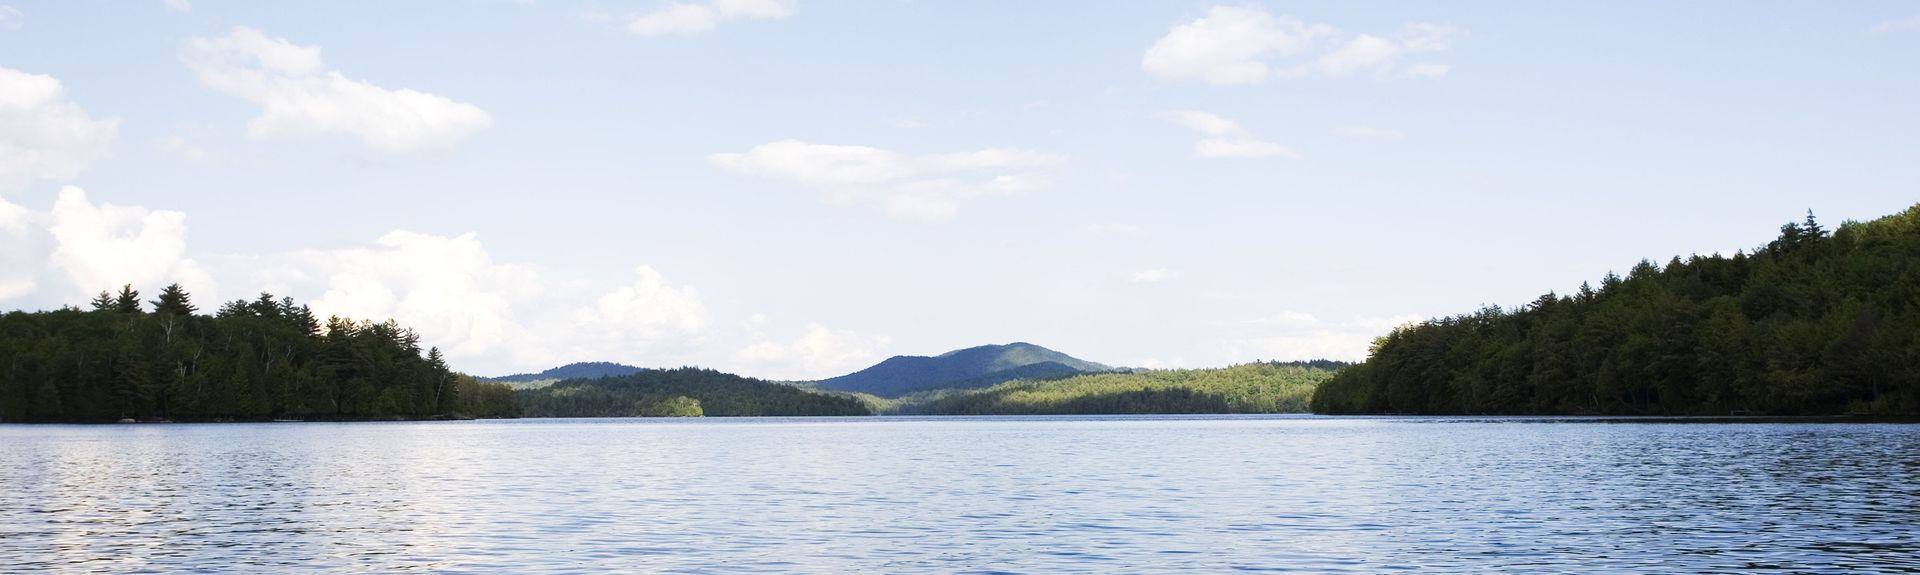 Vrbo | Saranac Lake, NY Vacation Rentals: house rentals & more